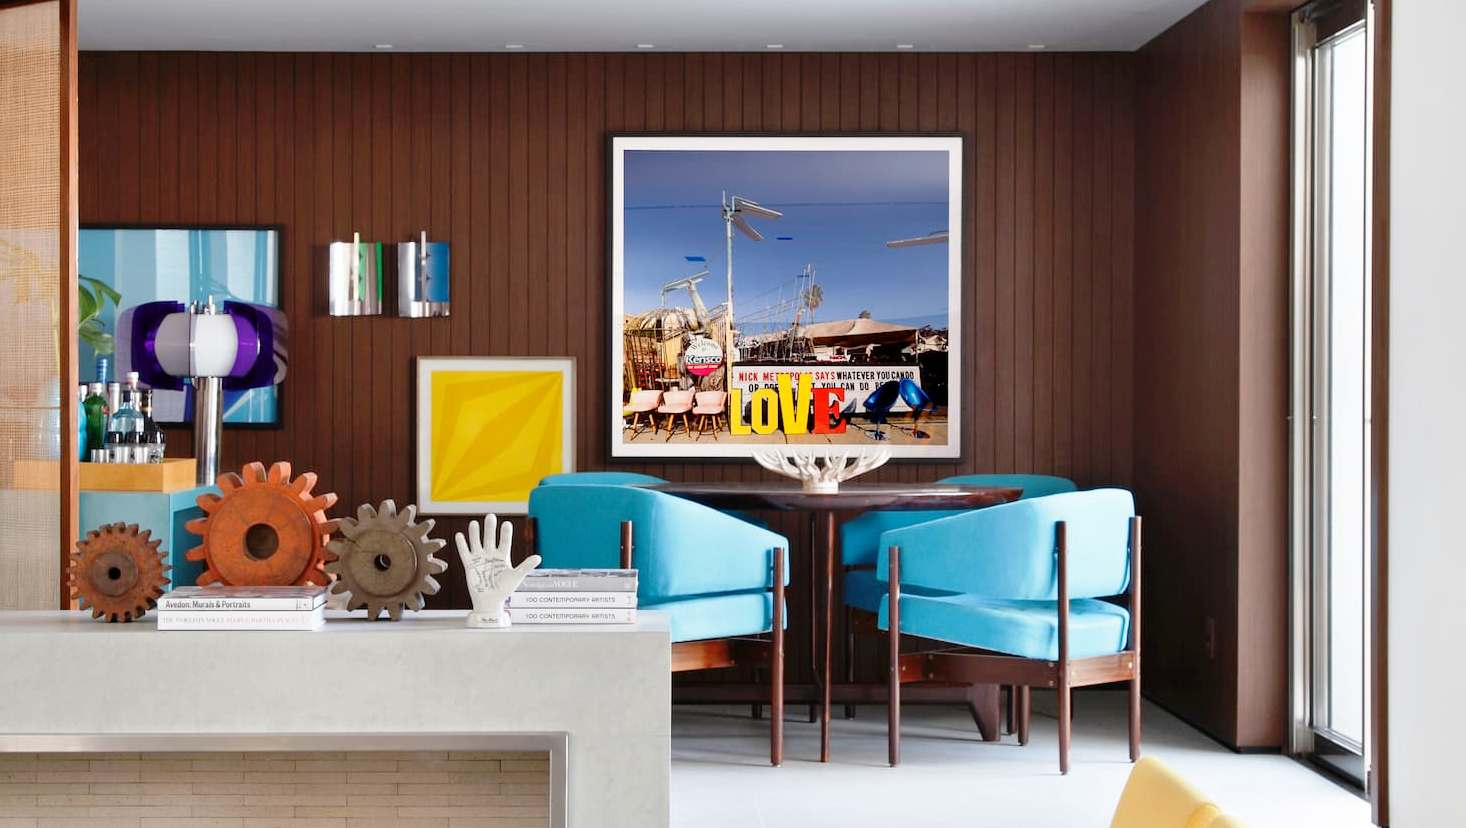 Dining area with a round brown table surrounded by upholstered turquoise chairs. On the wall are pictures of different heights in yellow, white, and azure.